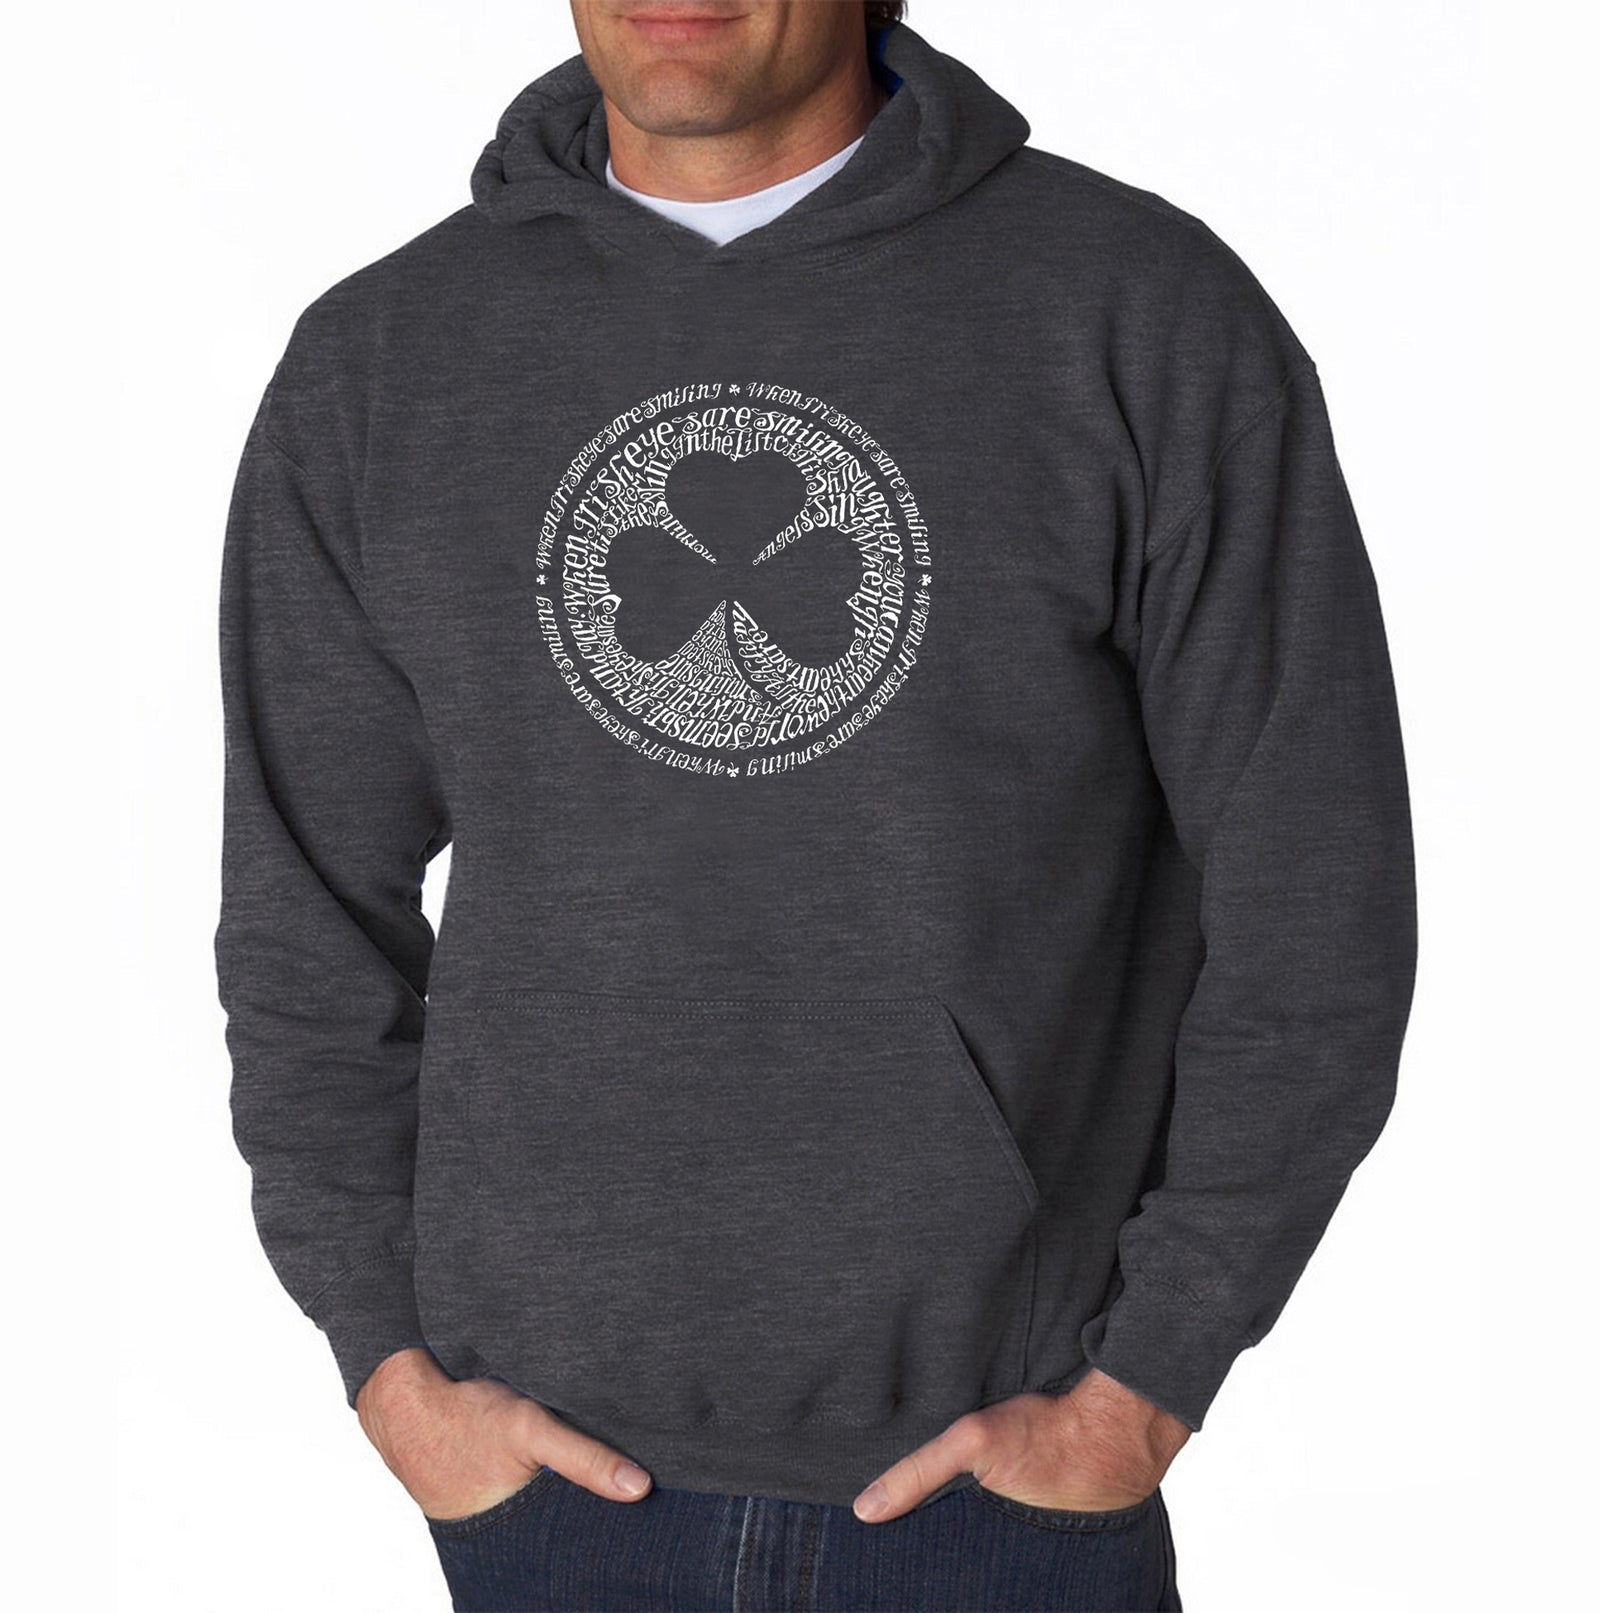 Men's Hooded Sweatshirt - LYRICS TO WHEN IRISH EYES ARE SMILING